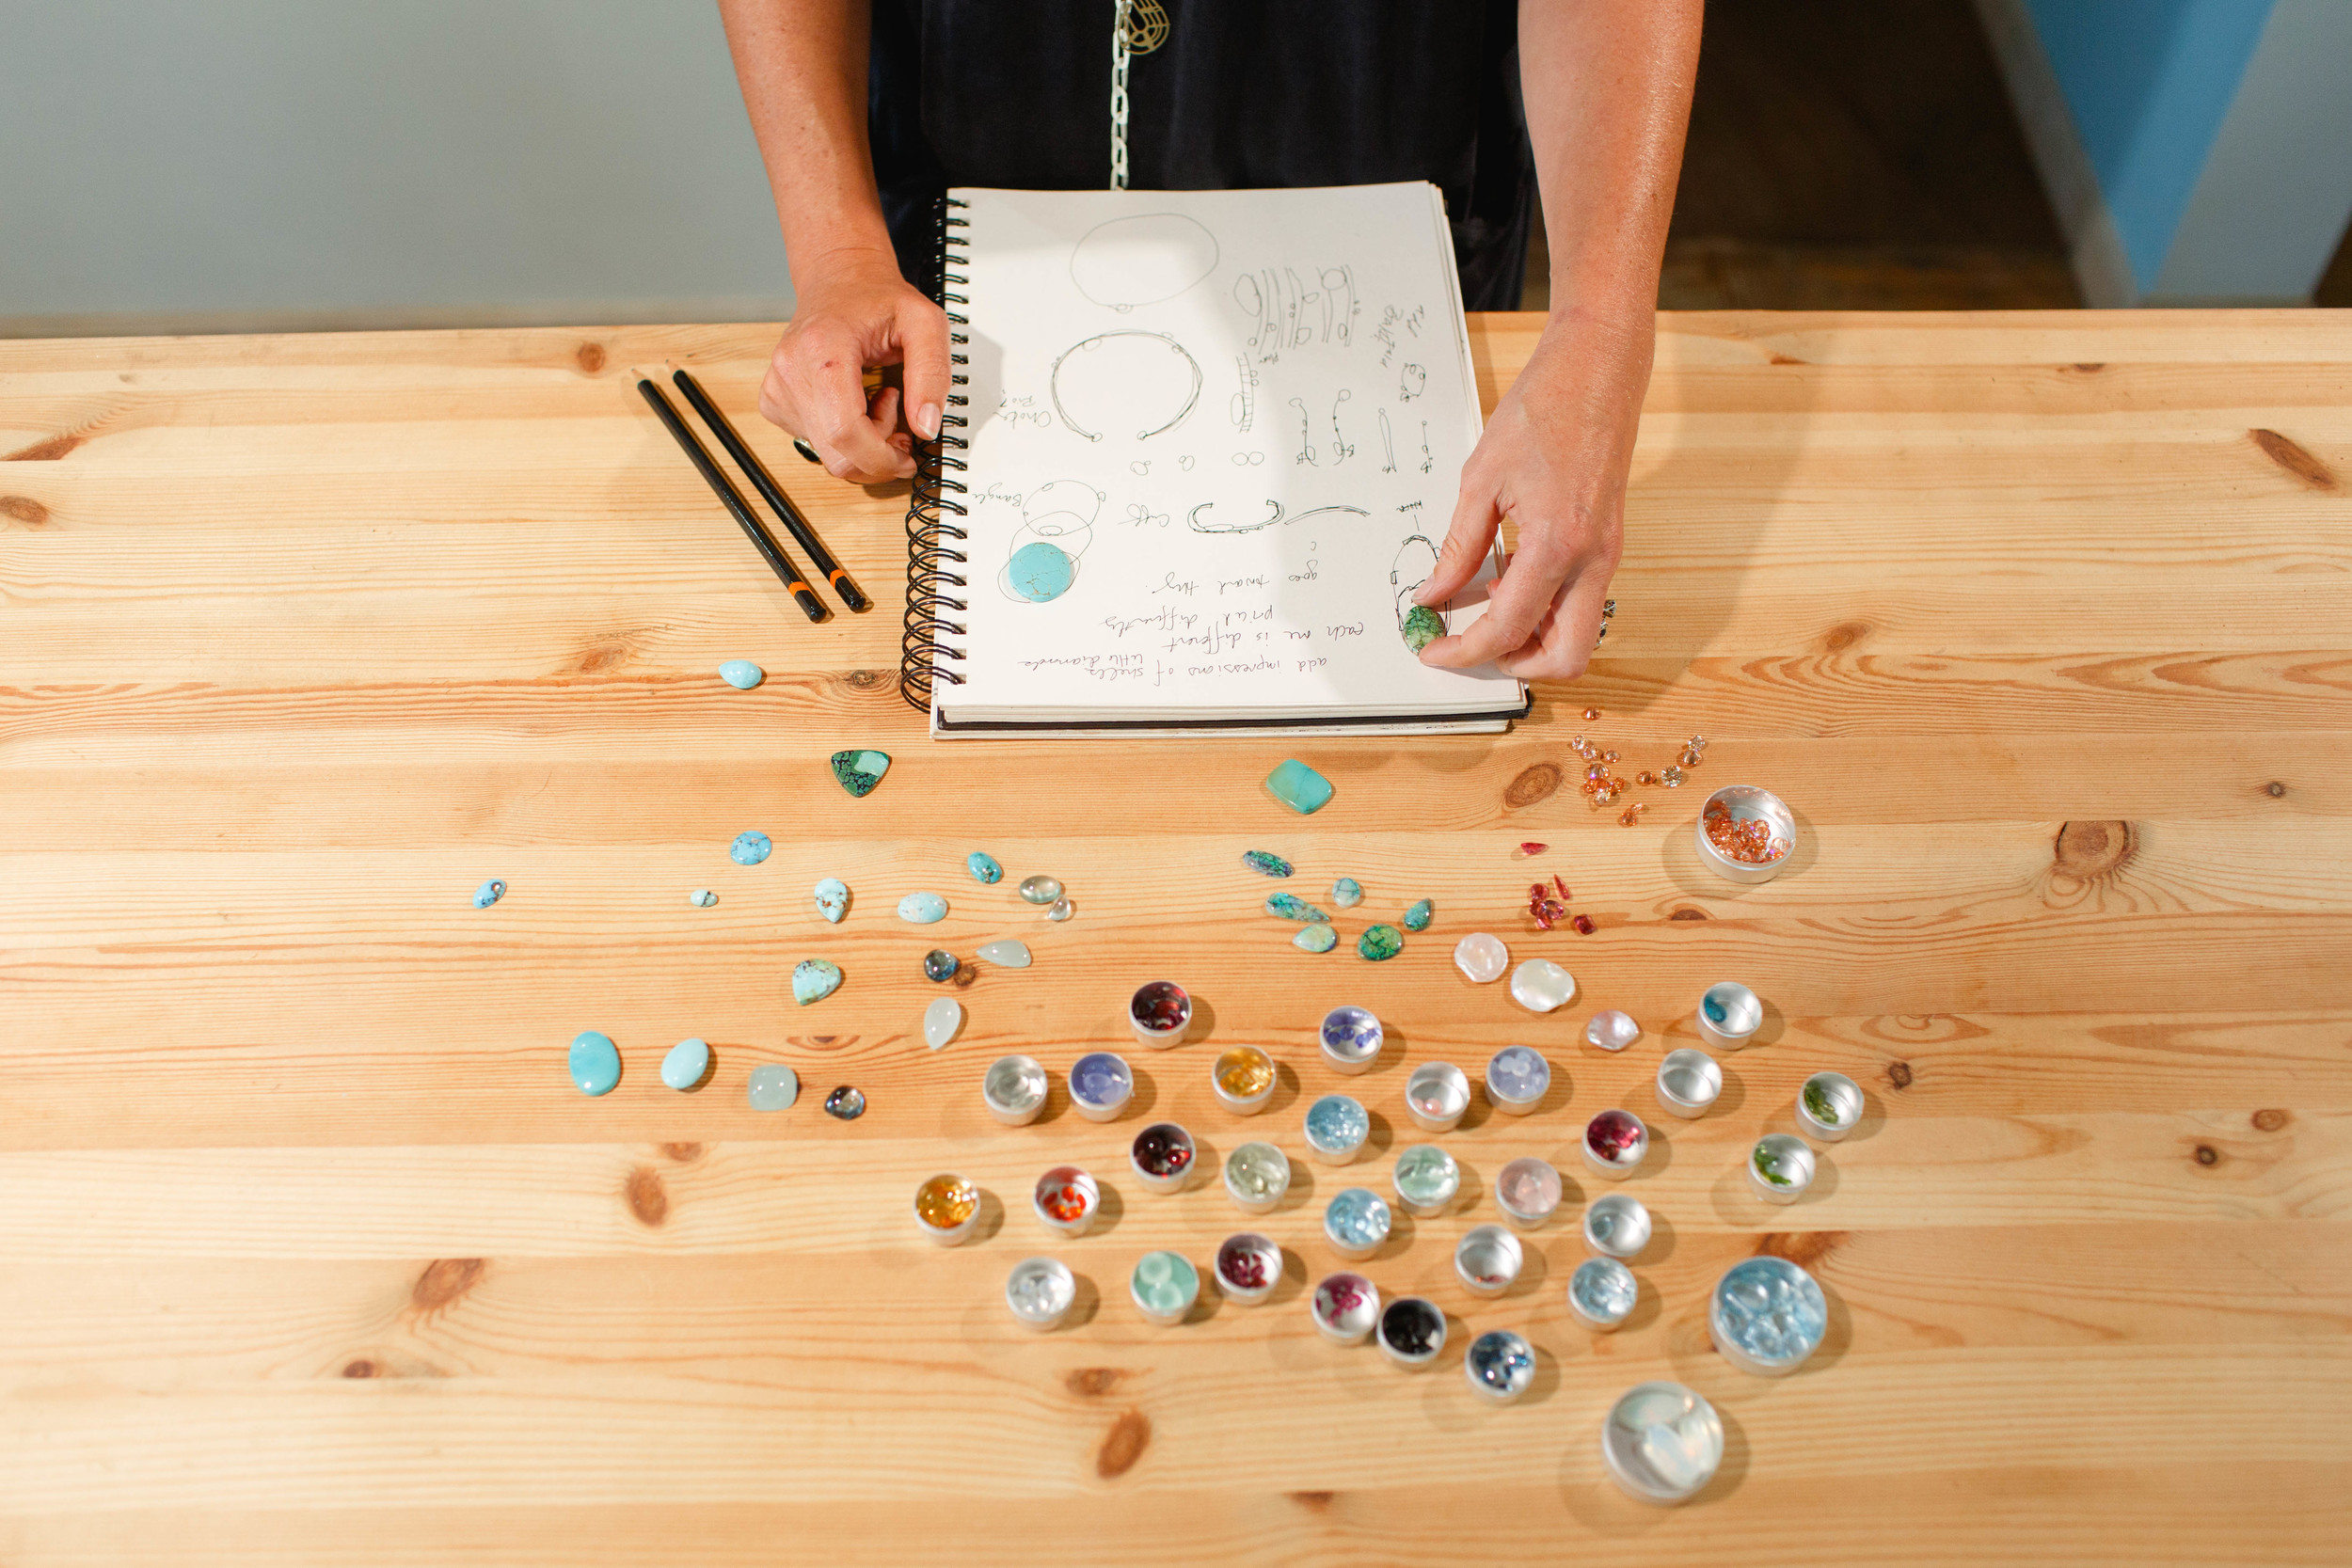 Working from her sketchbook, Heidi selects stones to complete her original designs.